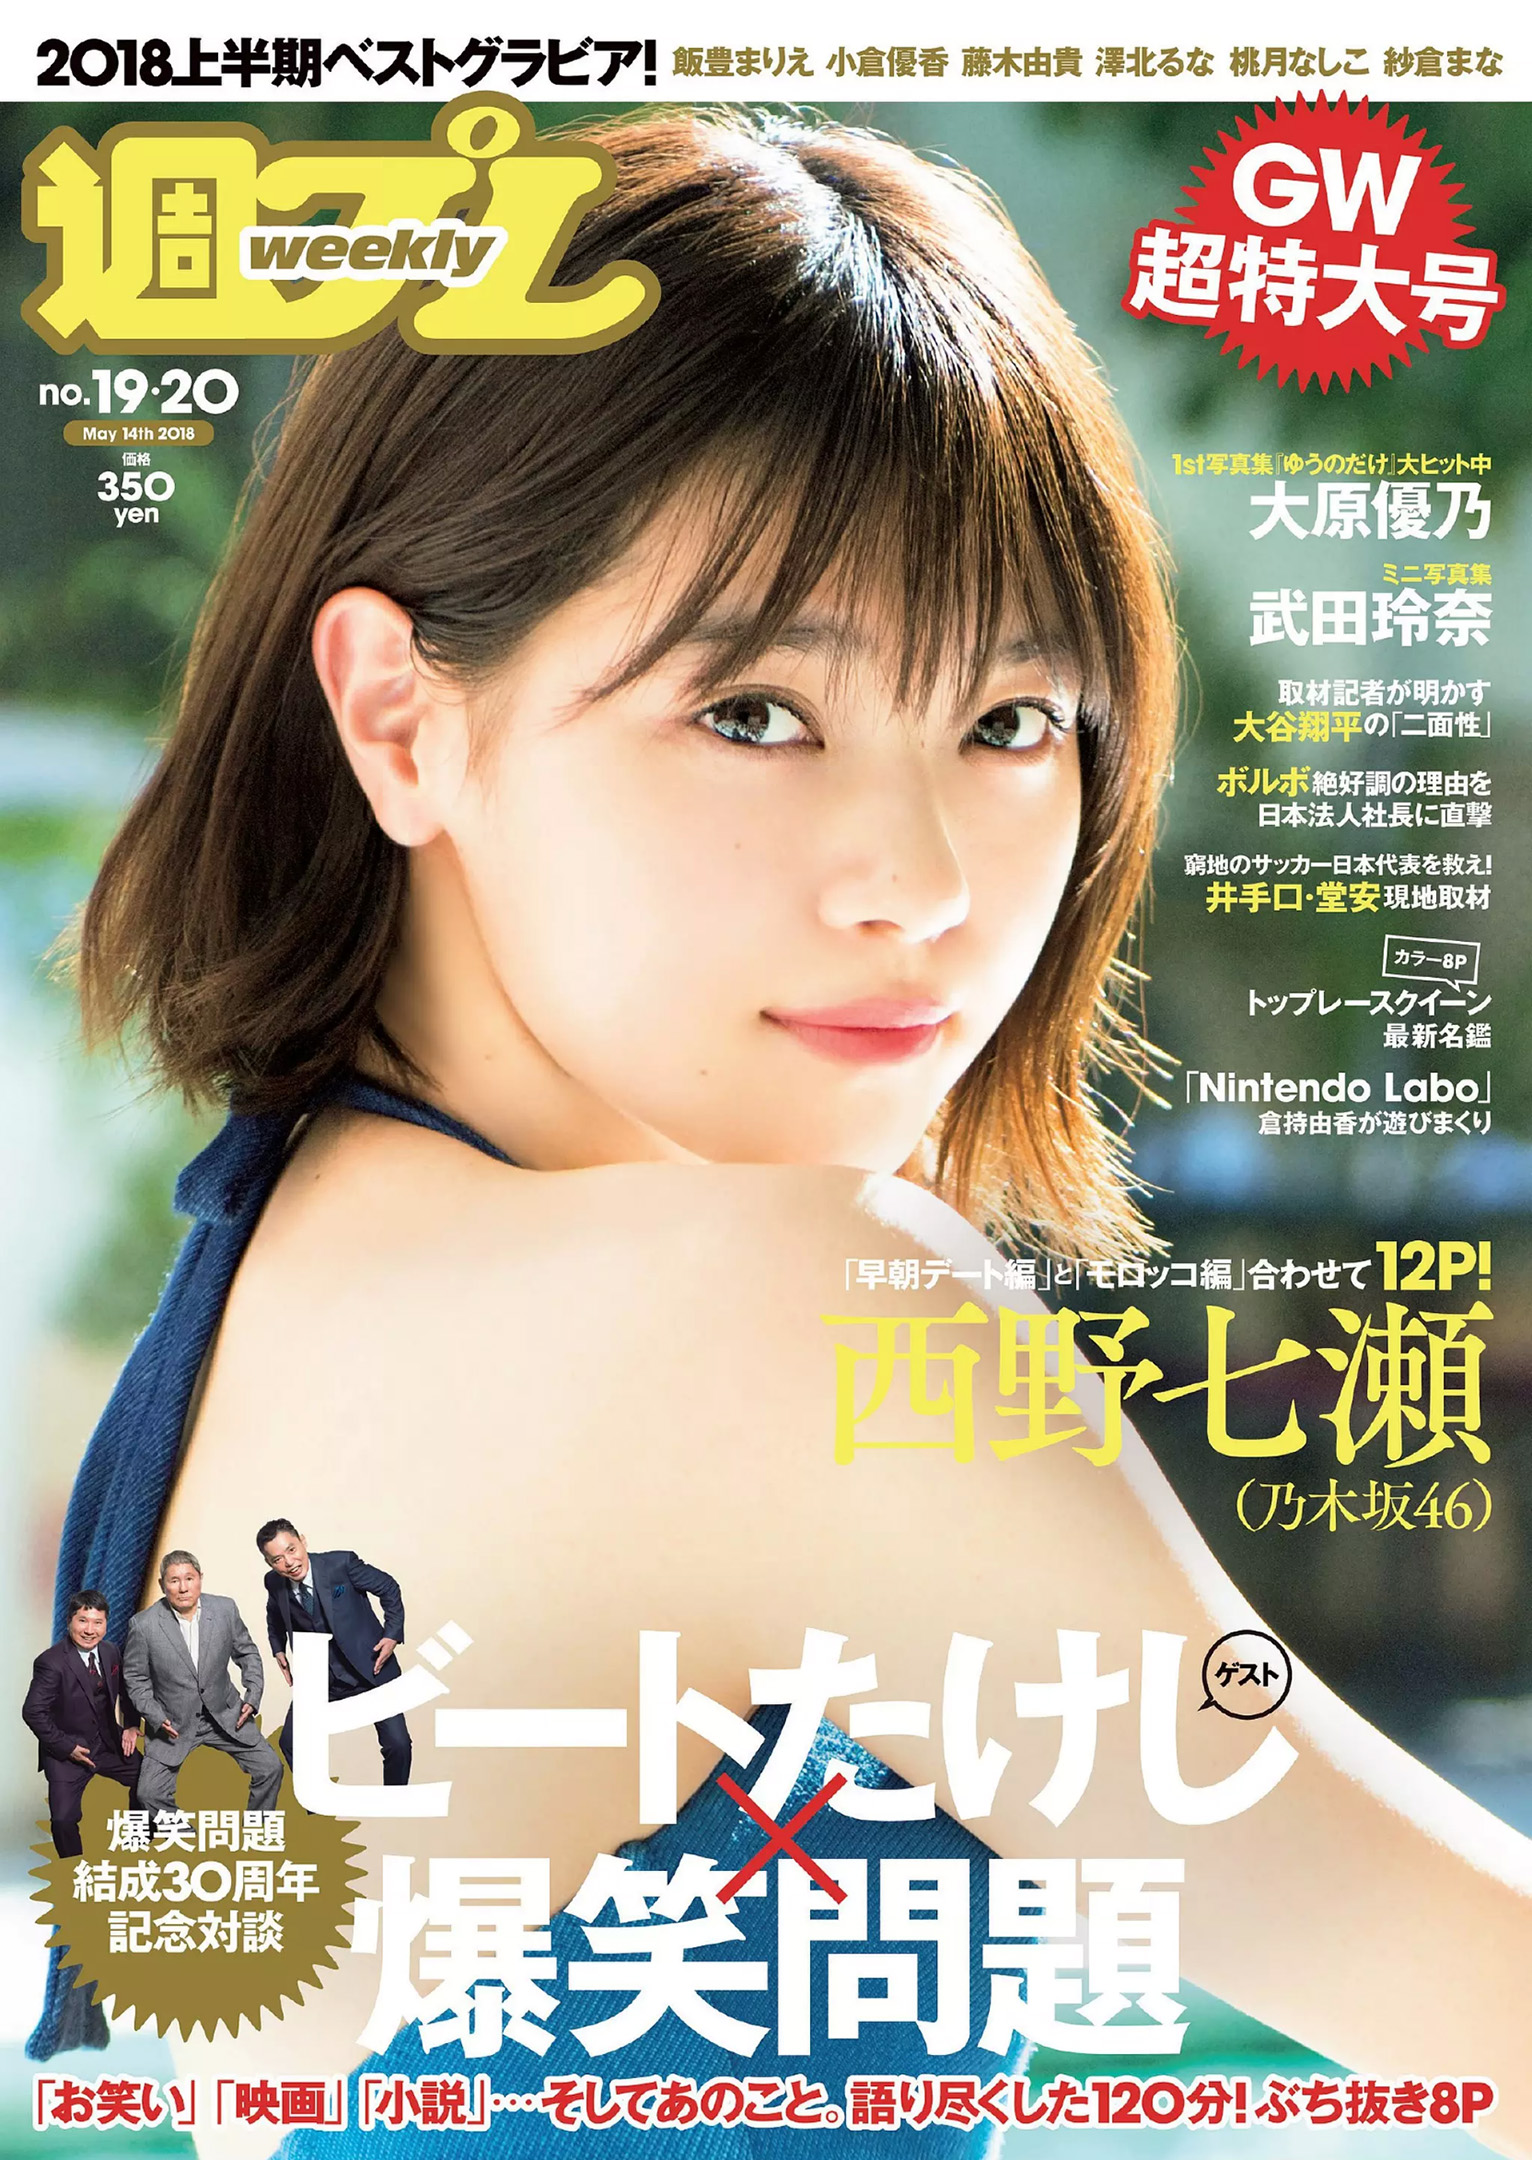 20180716.0114.17 Weekly Playboy (2018.19-20) 001 (JPOP.ru).jpg